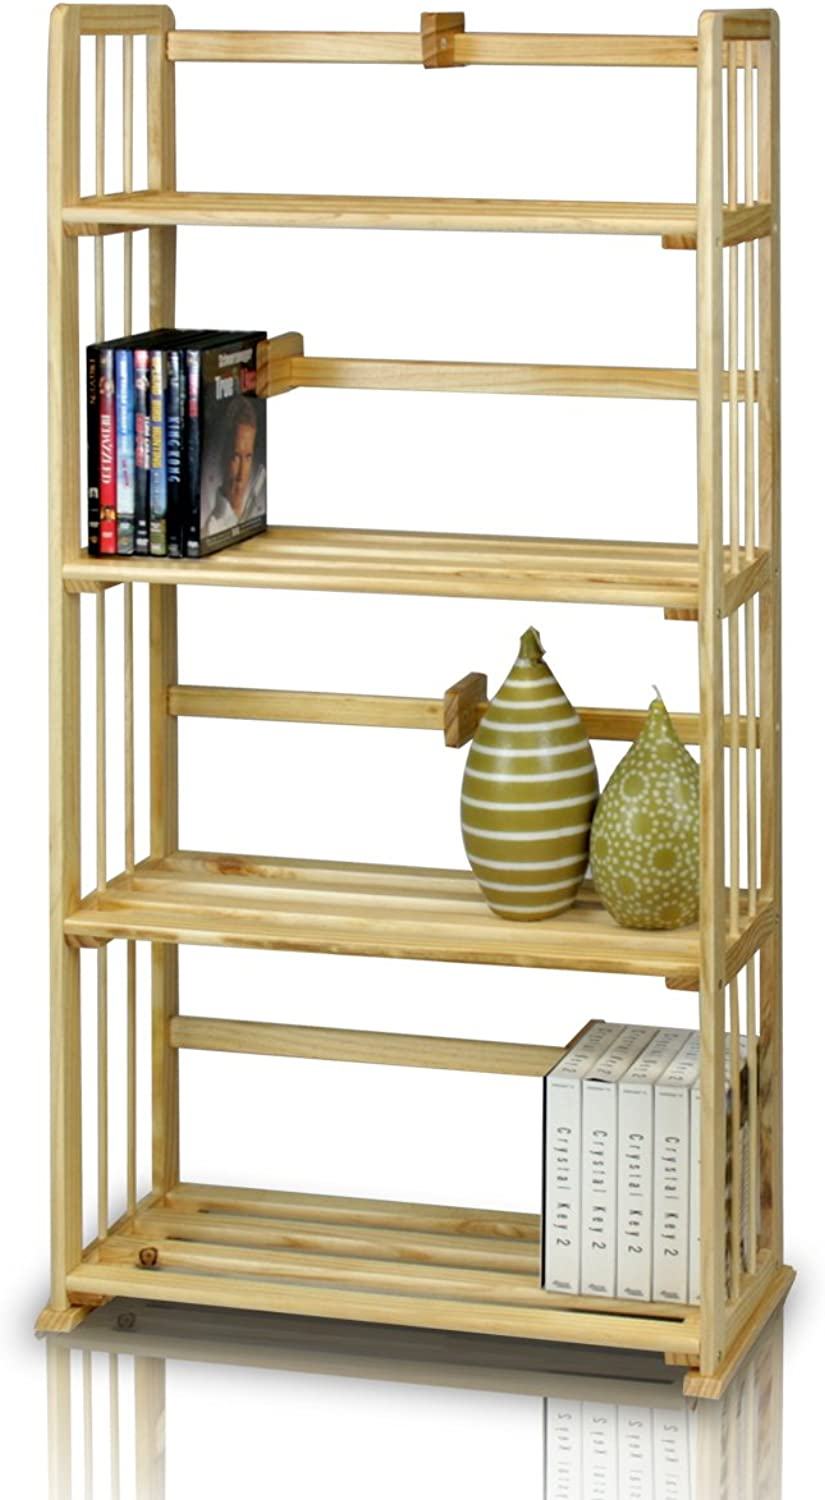 FURINNO FNCJ-33002 Pine Solid Wood 4-Tier Bookshelf